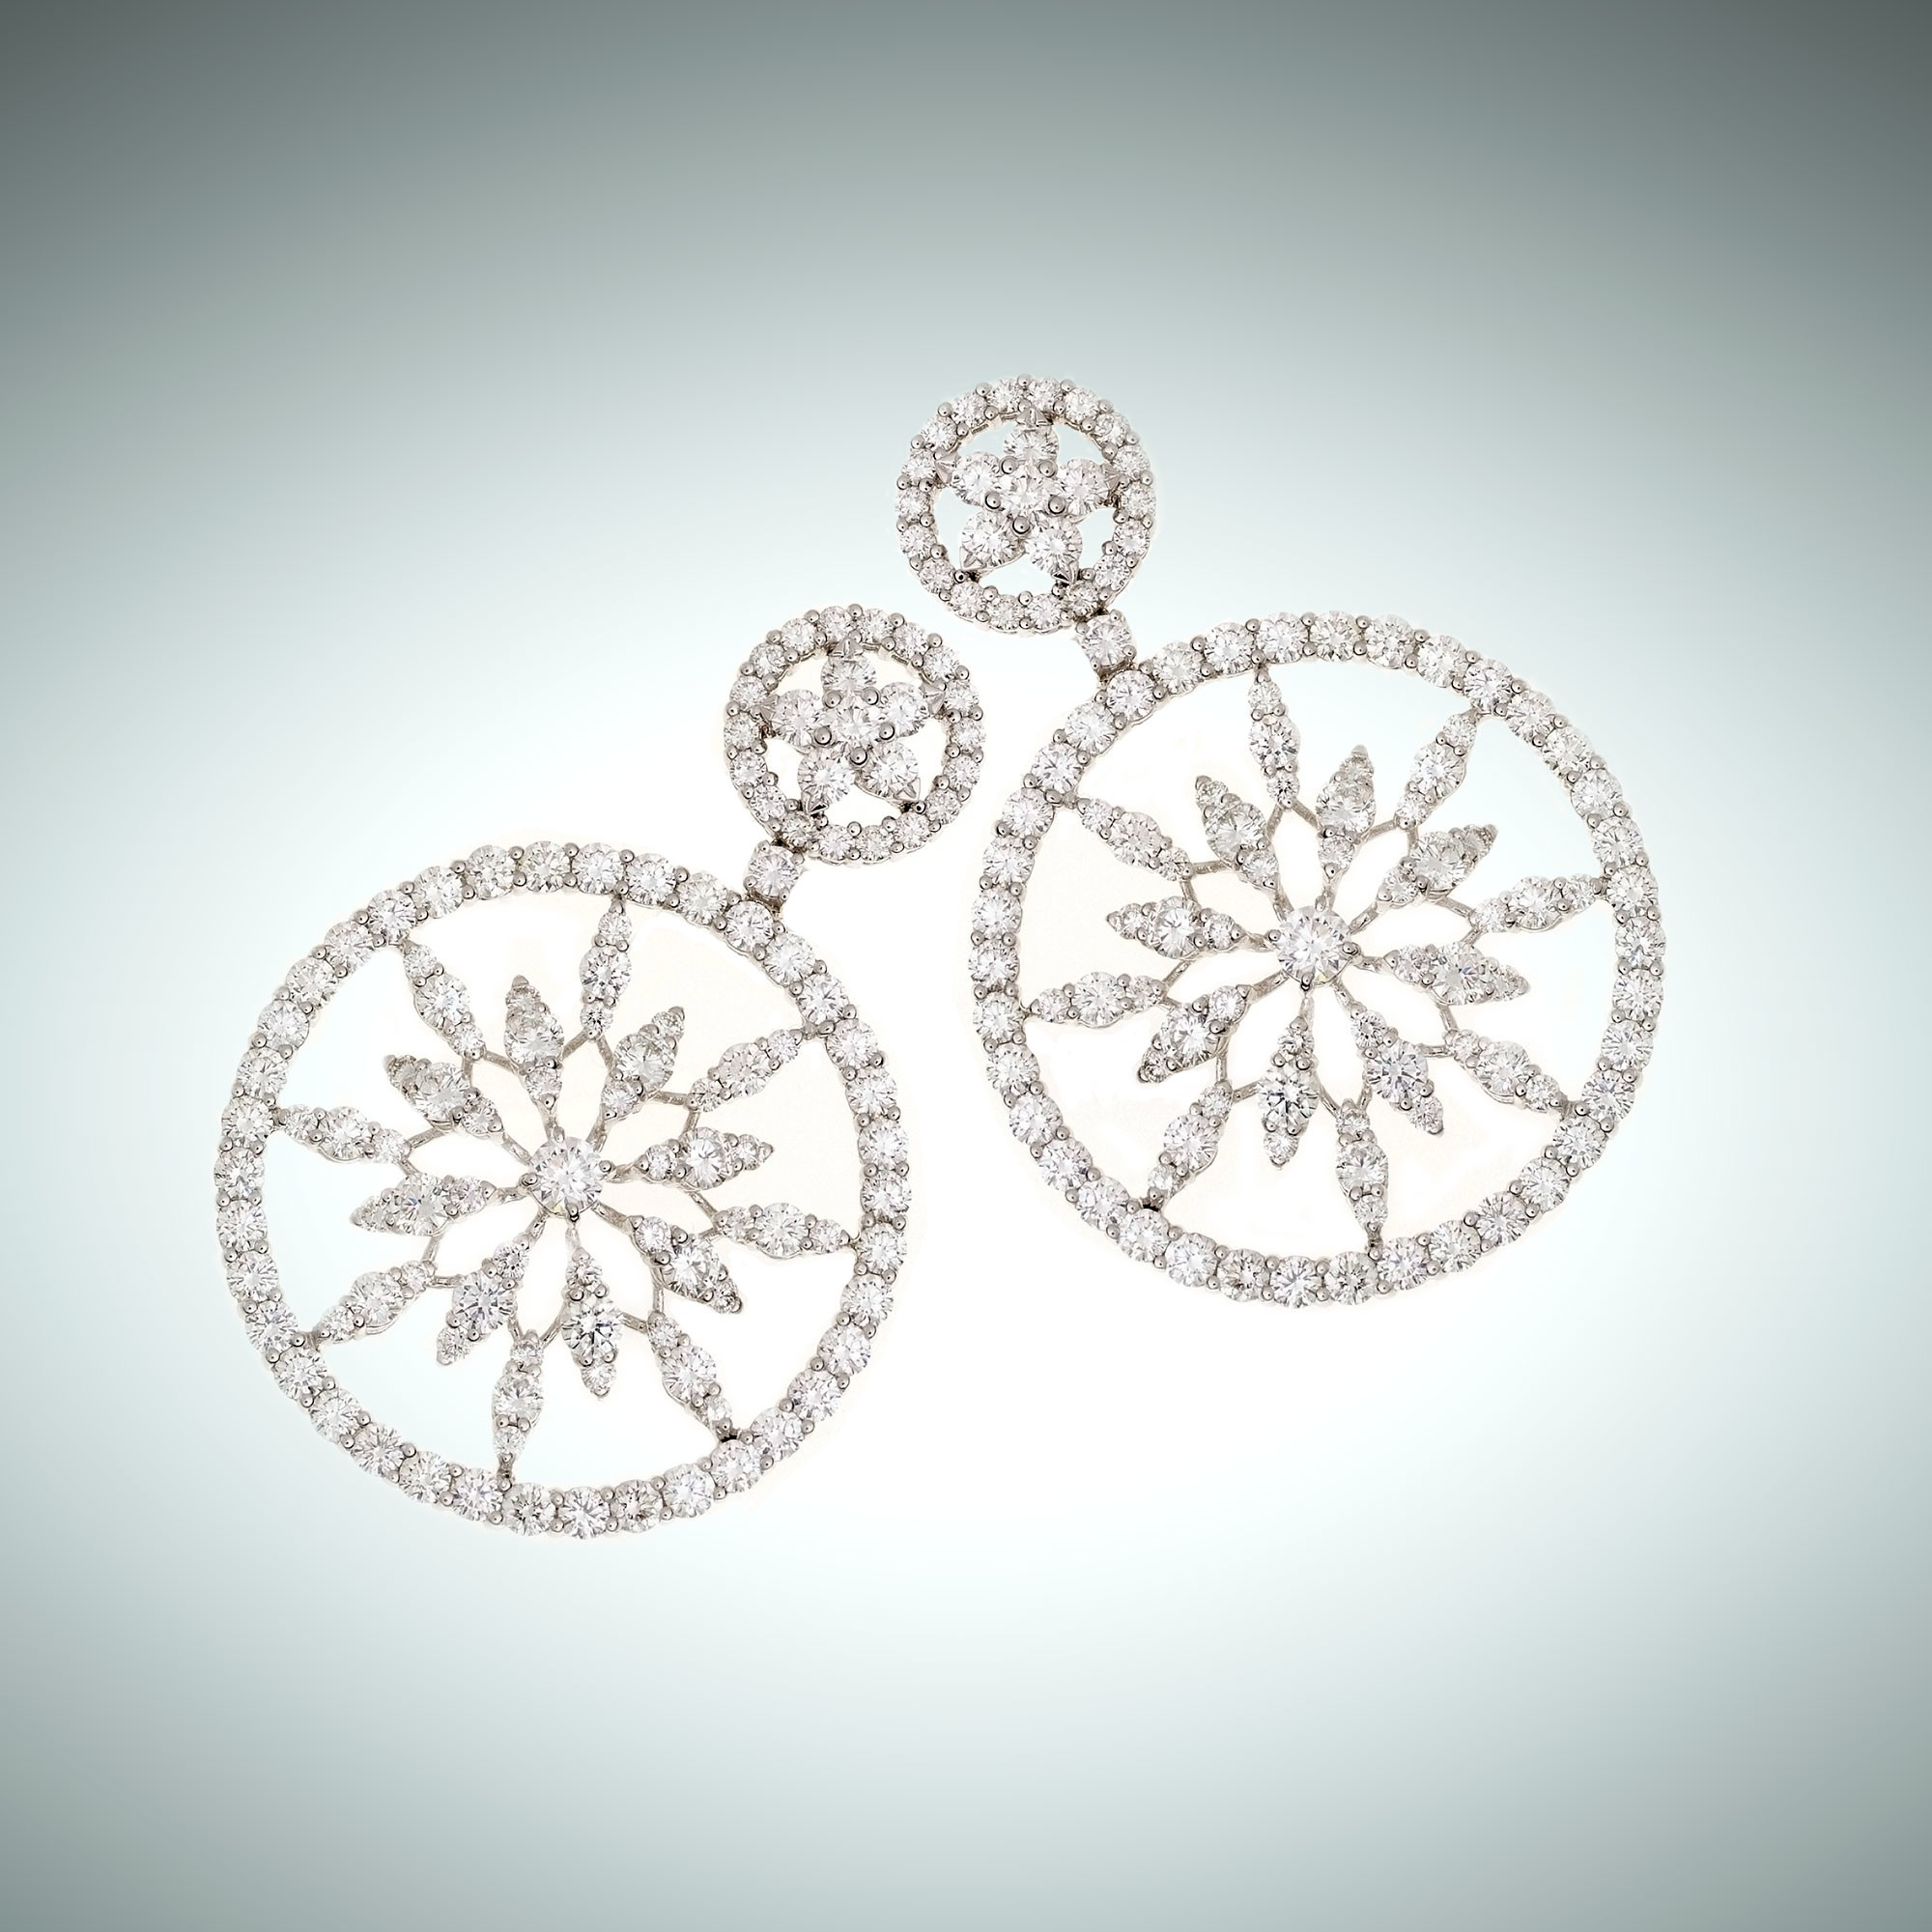 Merletti earrings